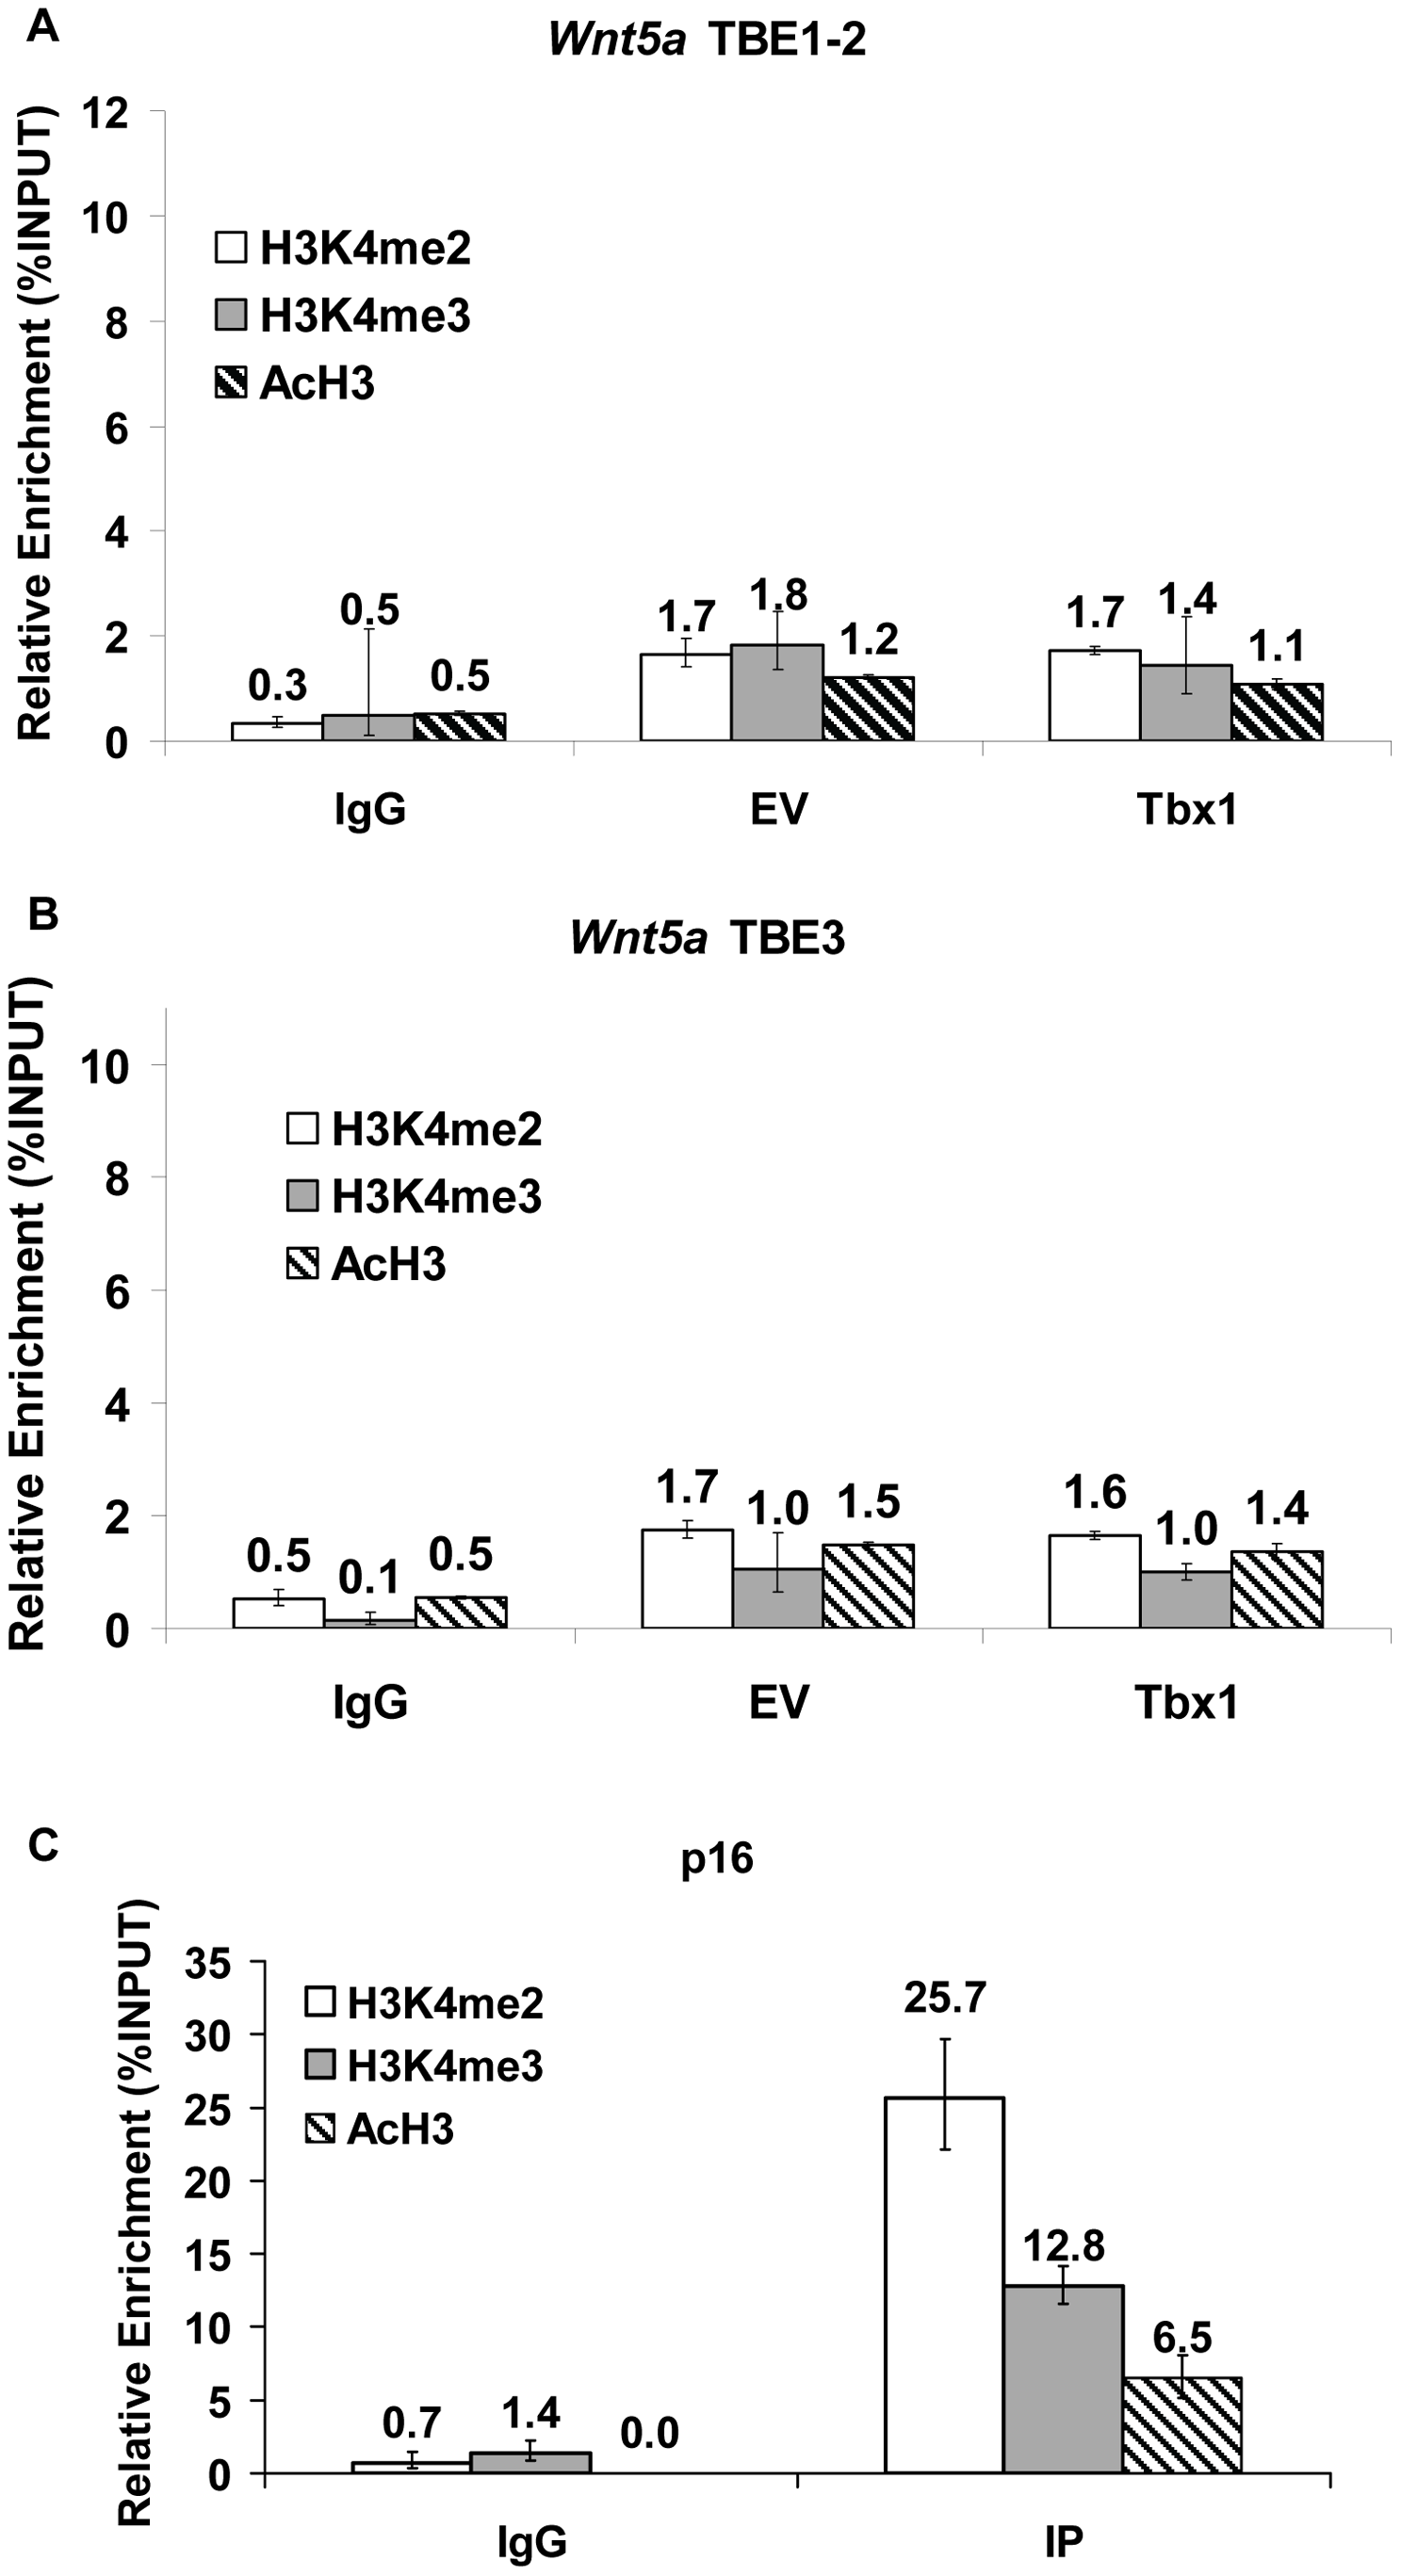 Effects of Tbx1 on H3K4 di- and tri-methylation and H3 acethylation status of the TBE regions of <i>Wnt5a</i>.